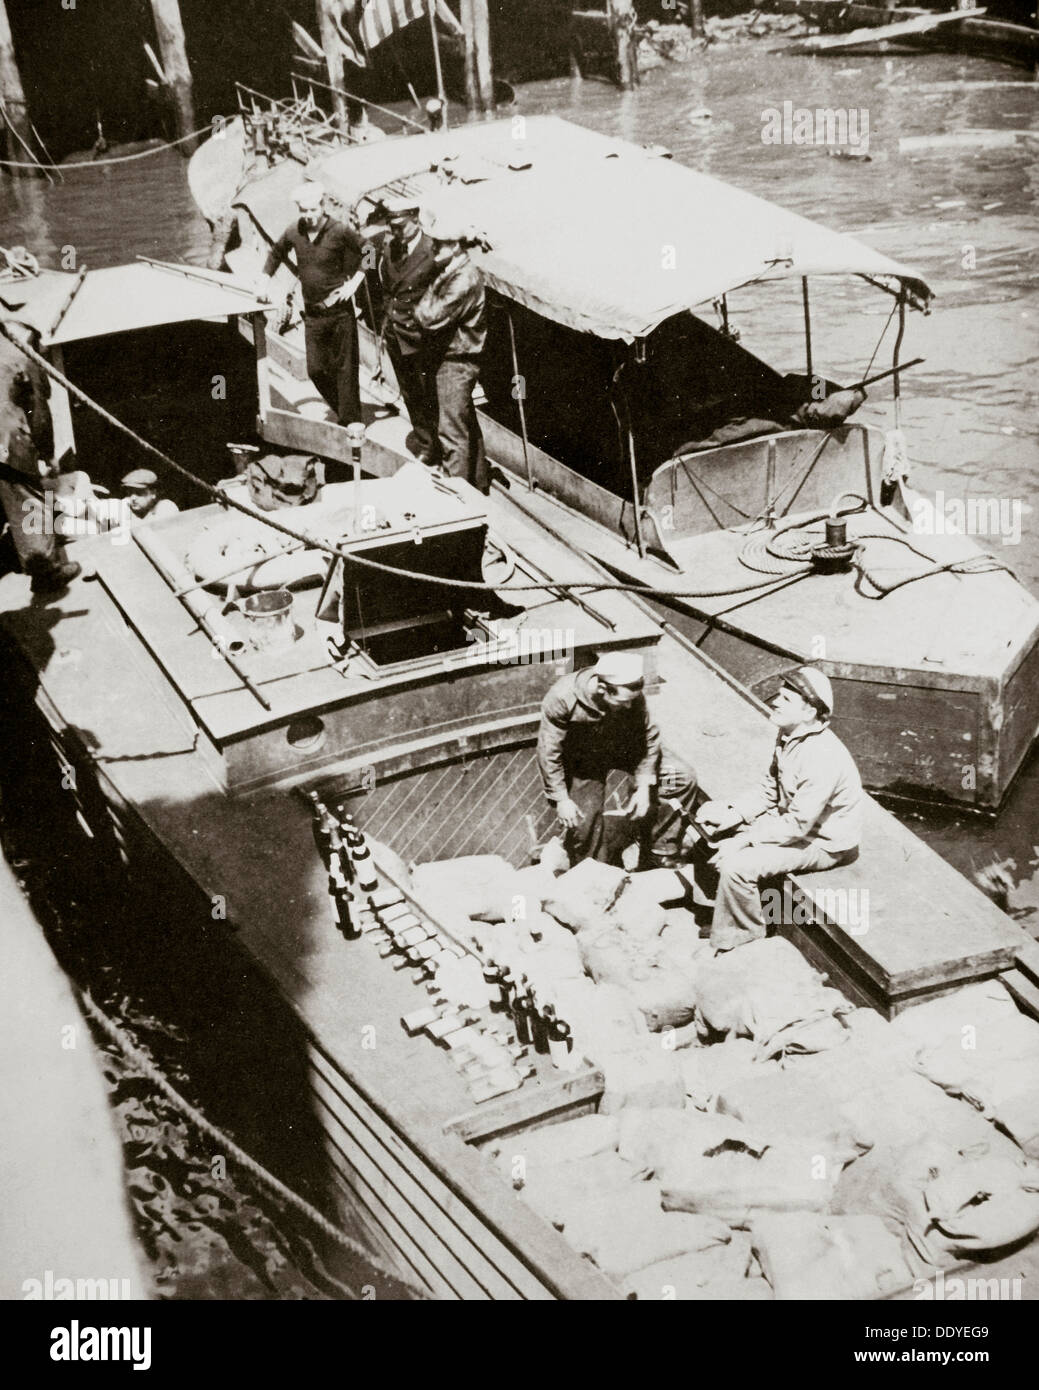 A rum-running boat caught smuggling in 2000 bottles, USA, 1920s. Artist: Unknown Stock Photo